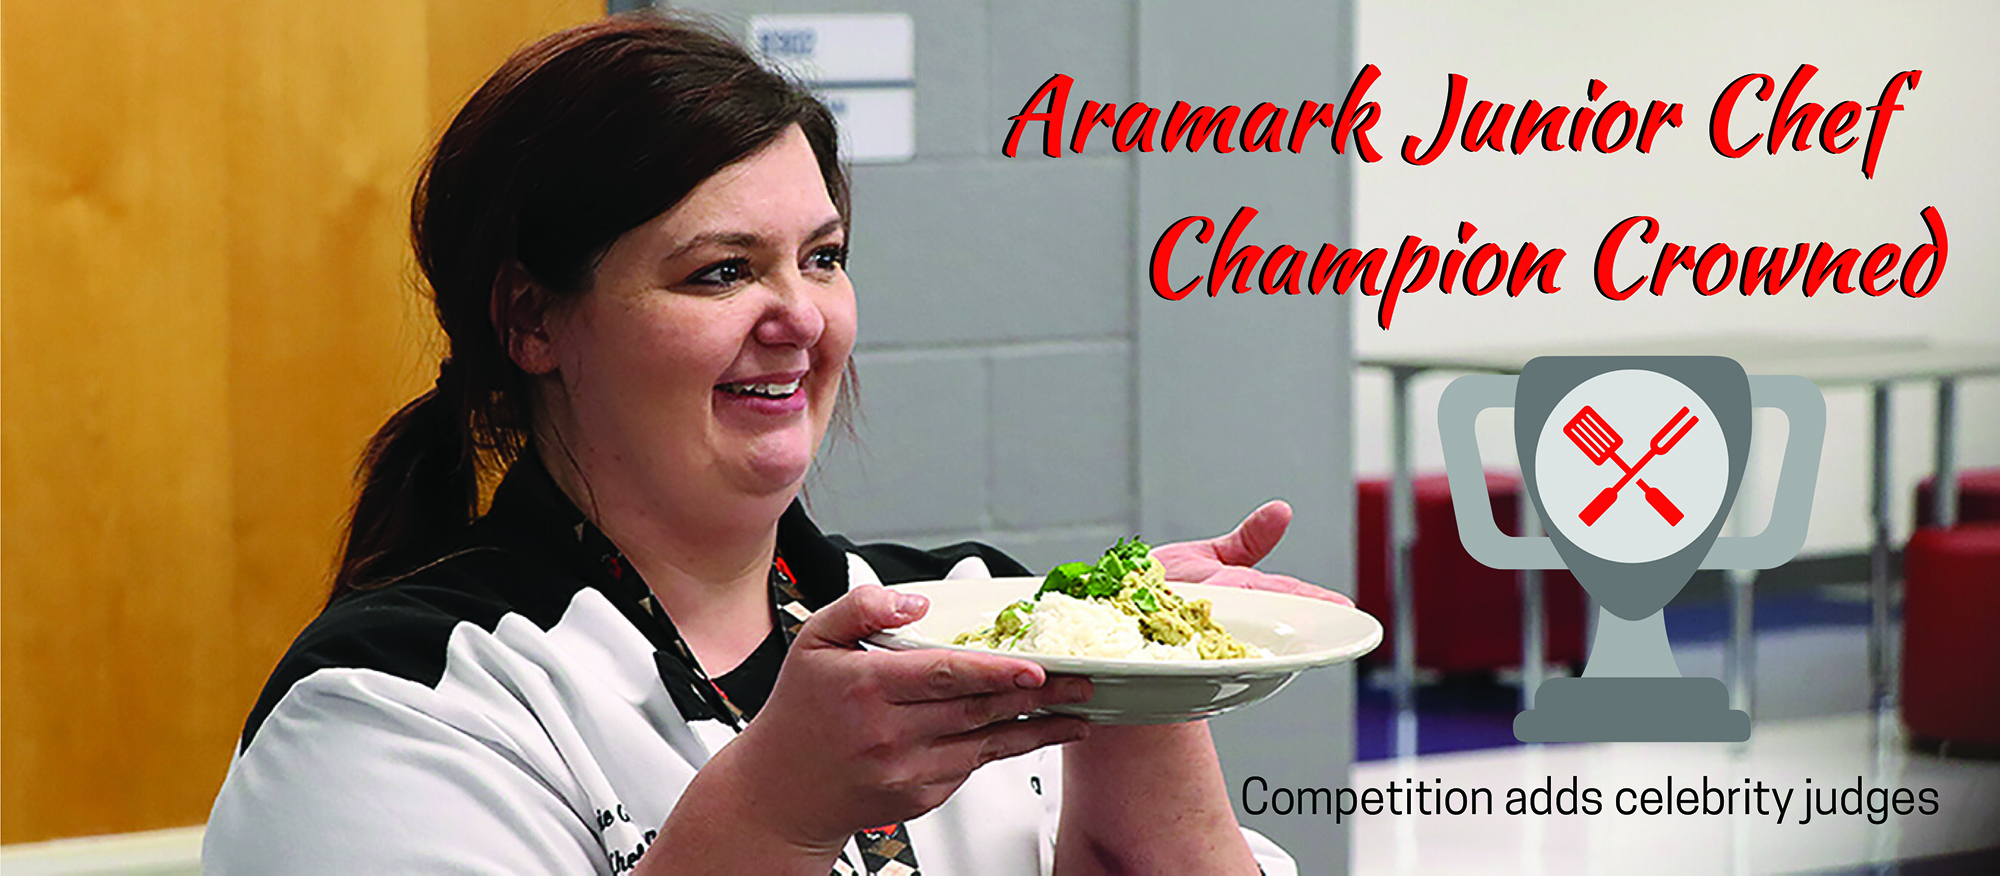 Aramark Junior Chef Champion Crowned, Competition Adds Celebrity Judges